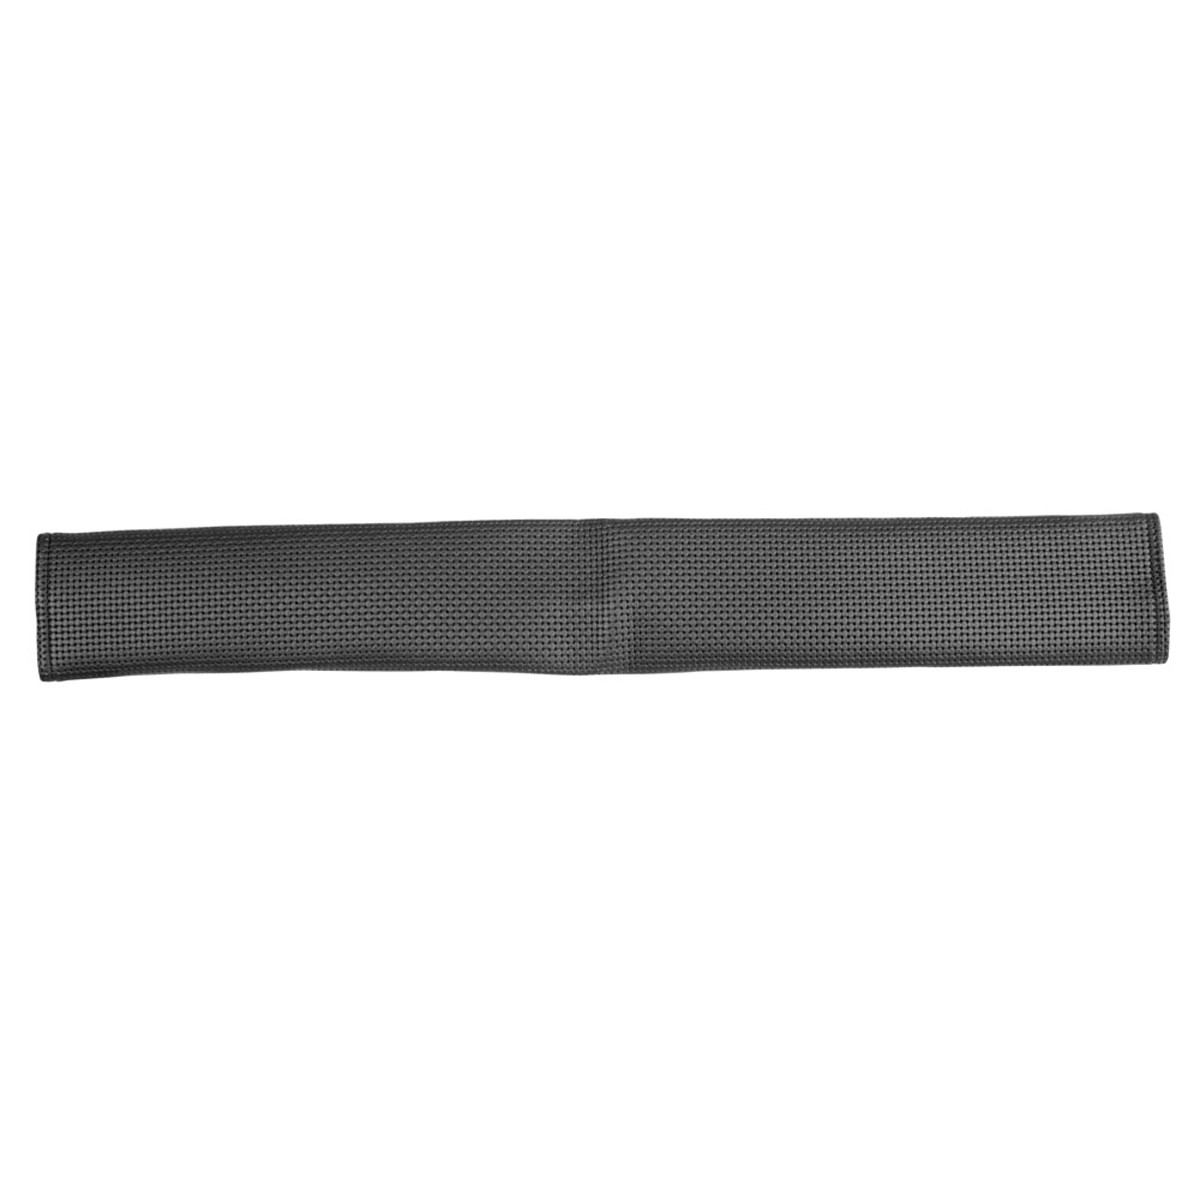 Honeycomb Neoprene Girth Sleeve